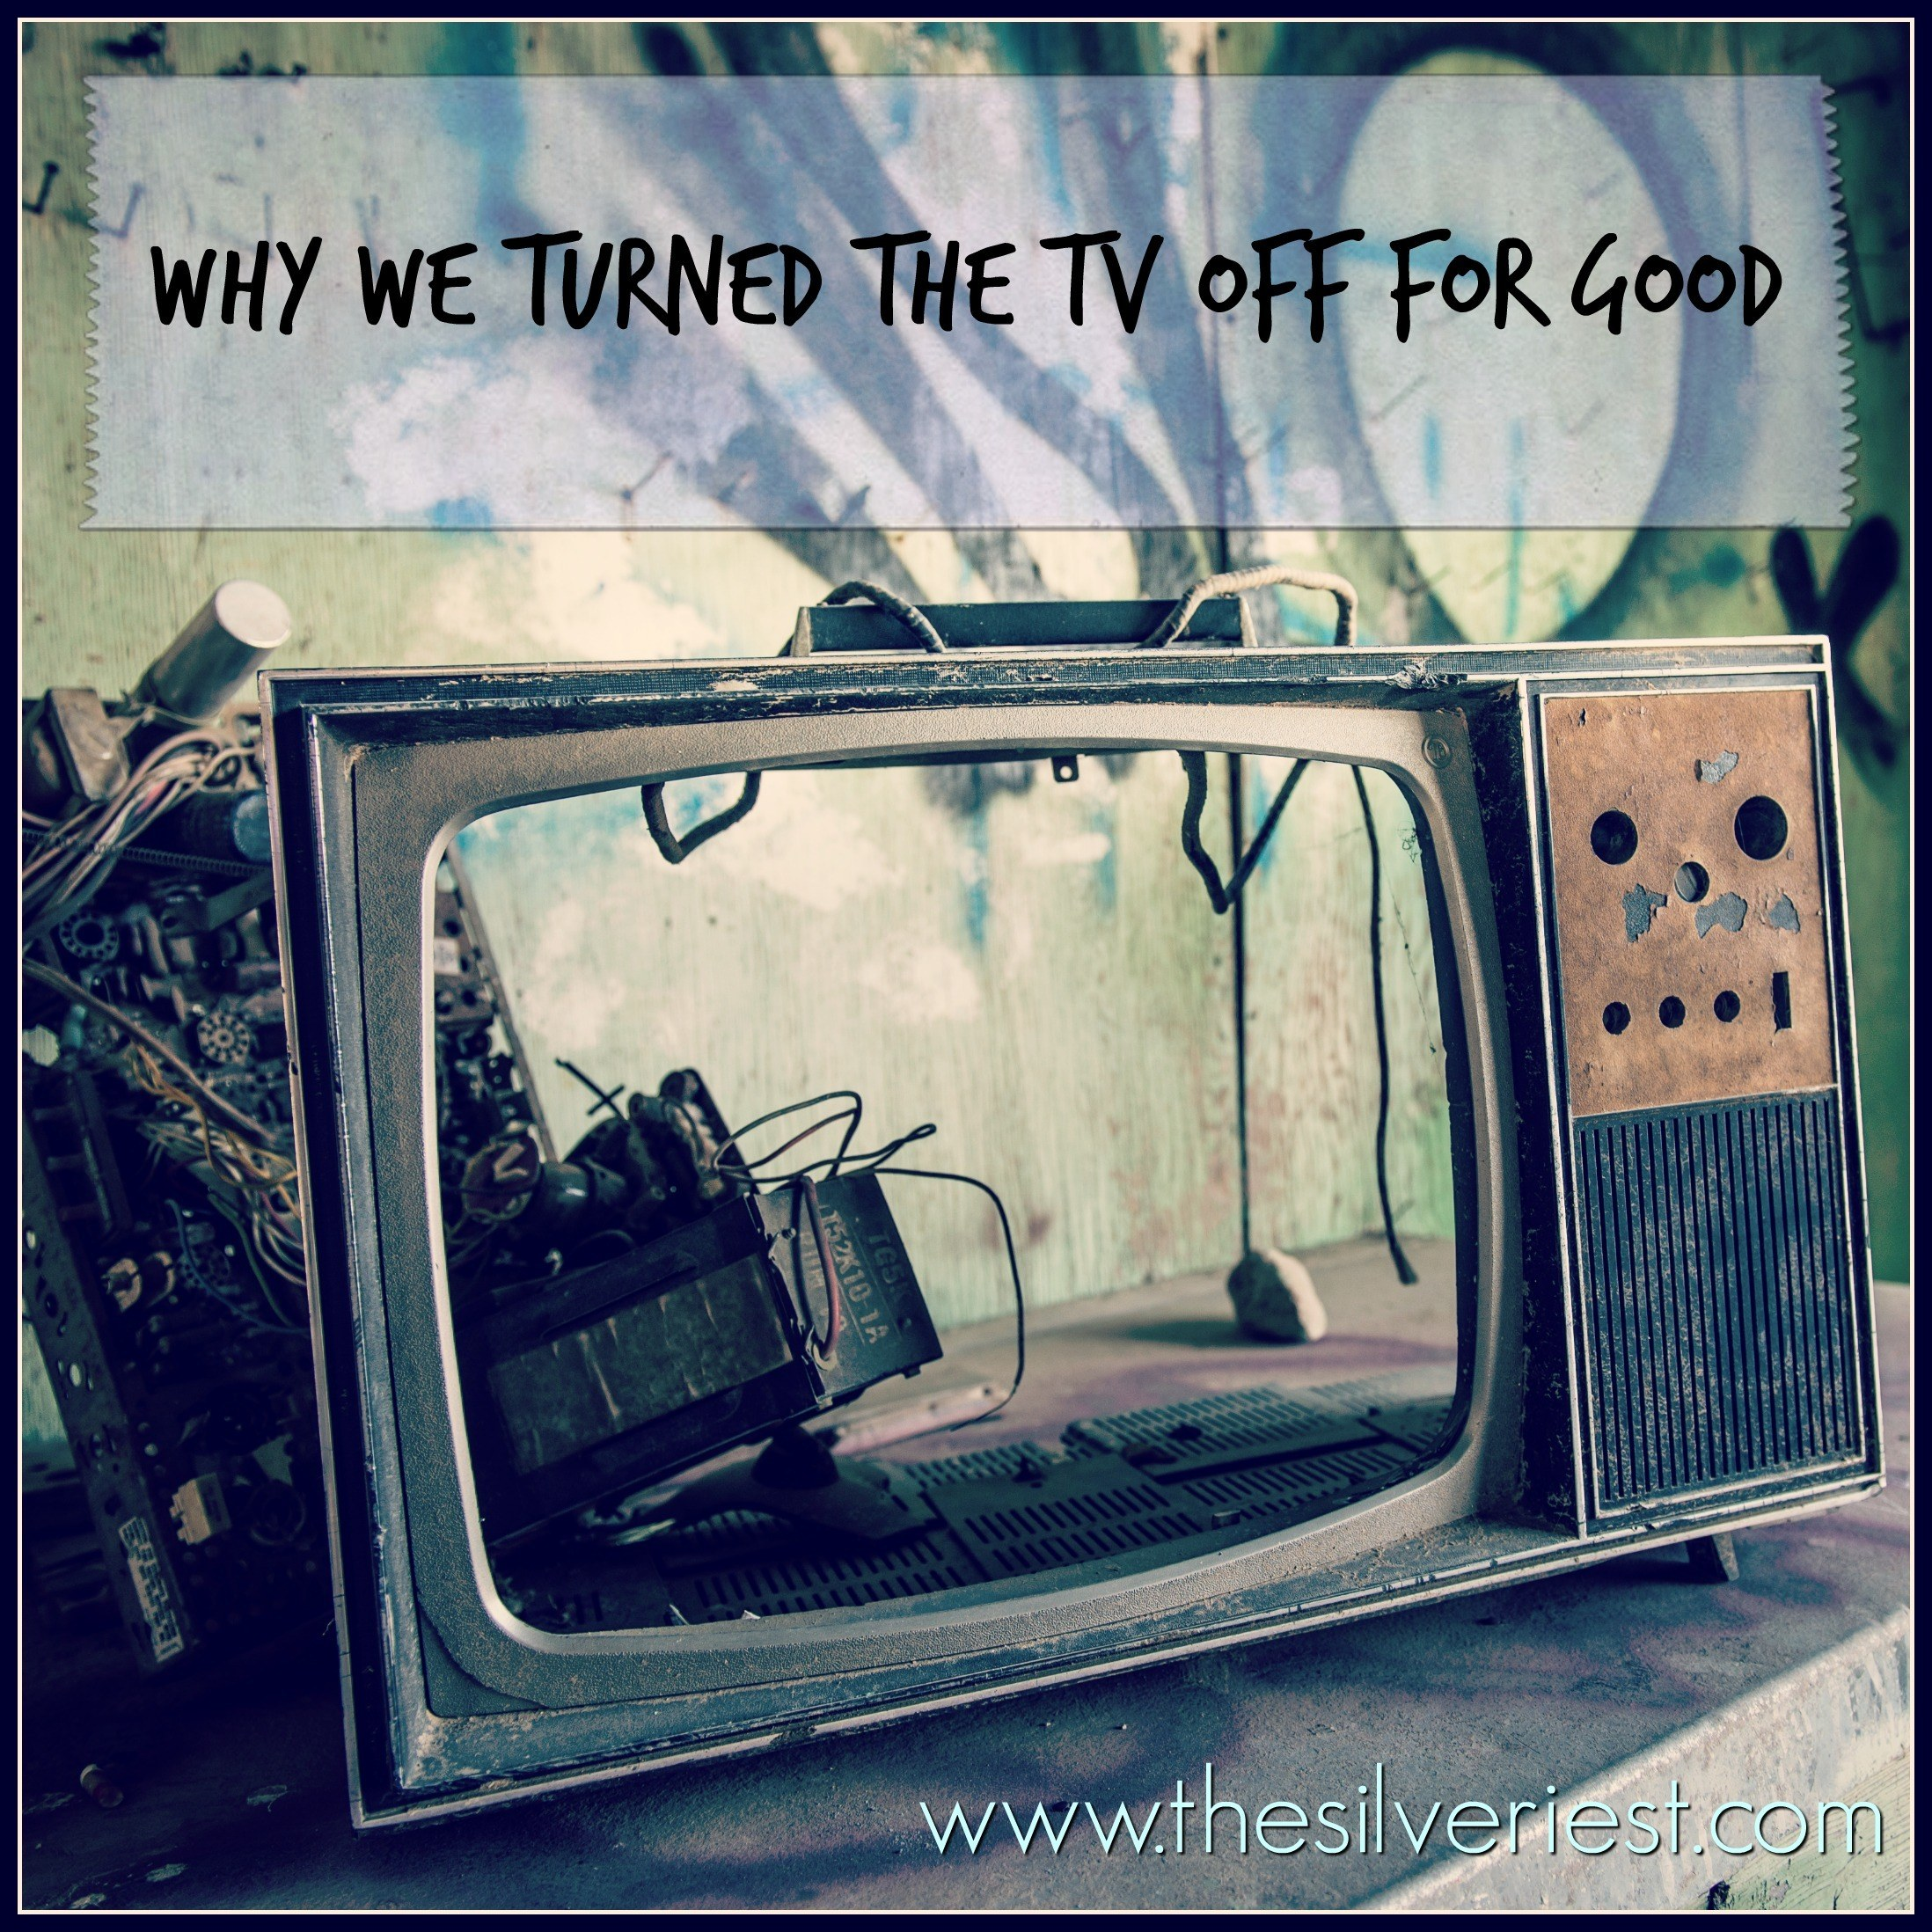 We turned the TV service off in 2010, and haven't looked back (even with preschoolers and toddlers!). Here's why, and why you should consider it too! www.thesilveriest.com